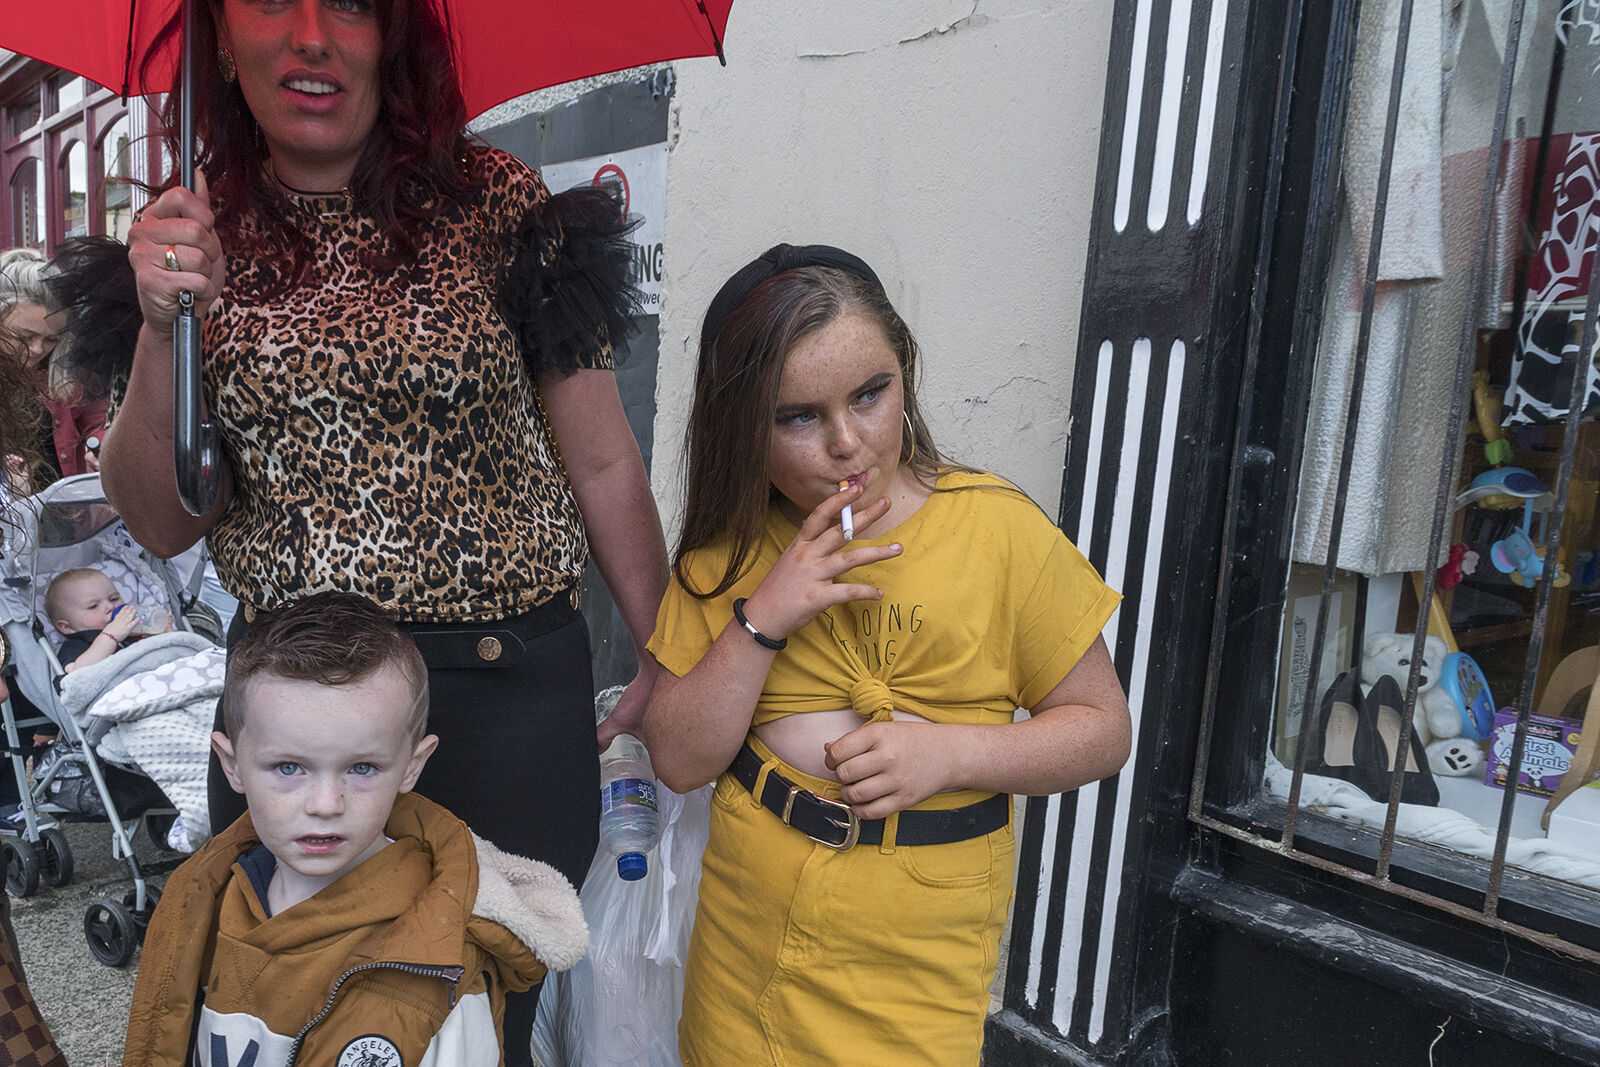 Toy Cigarette, Galway, Ireland 2019